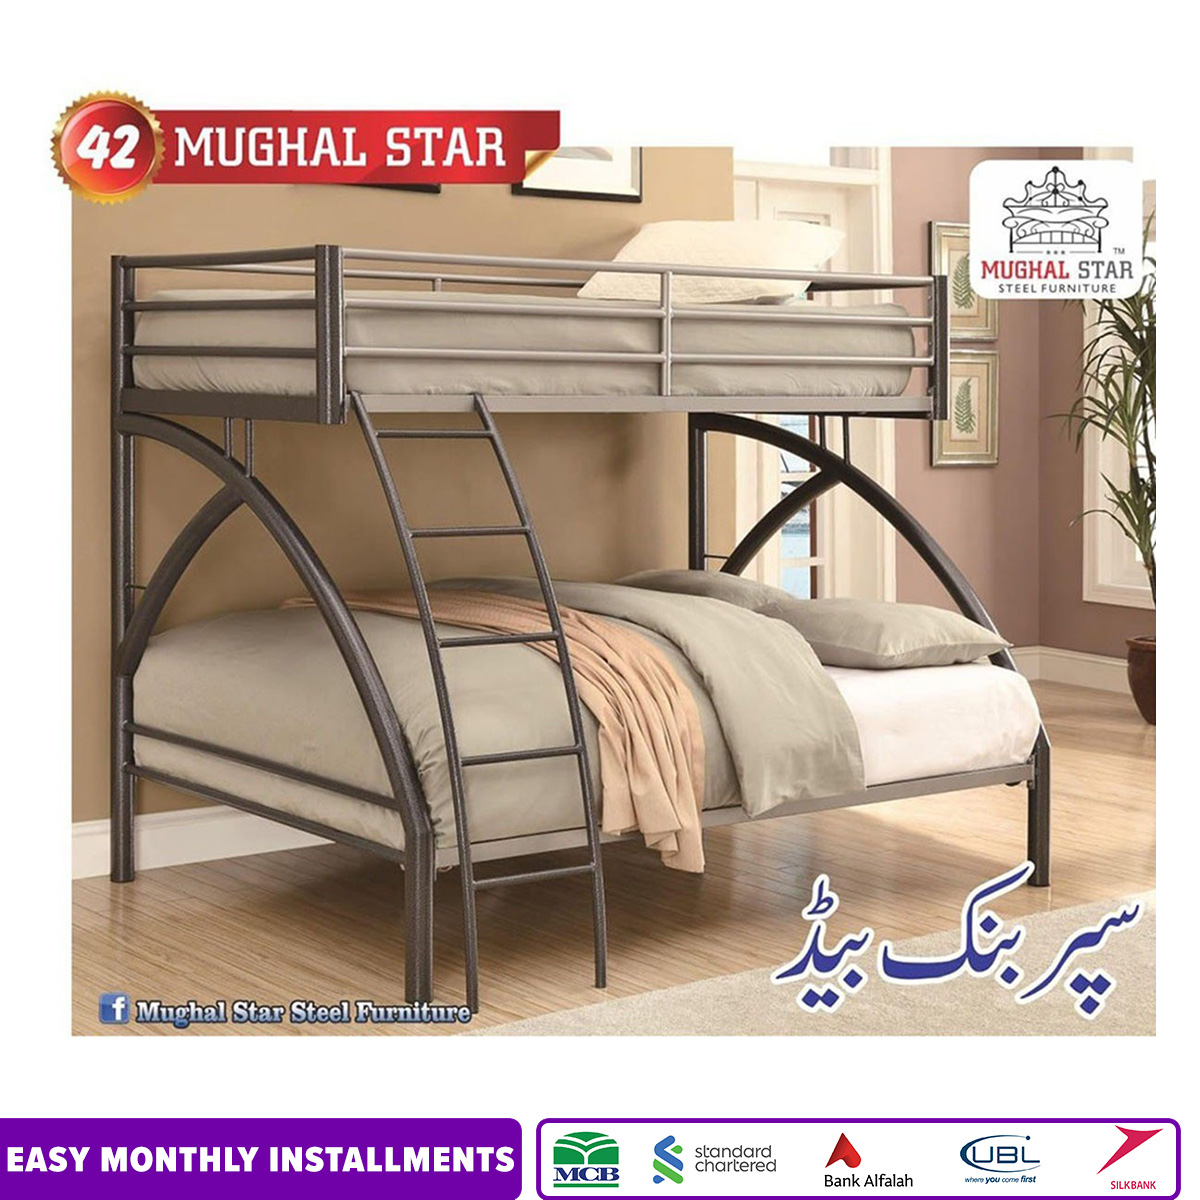 Super Bunk Bed, Iron Bed , Mughal Star Steel Furniture